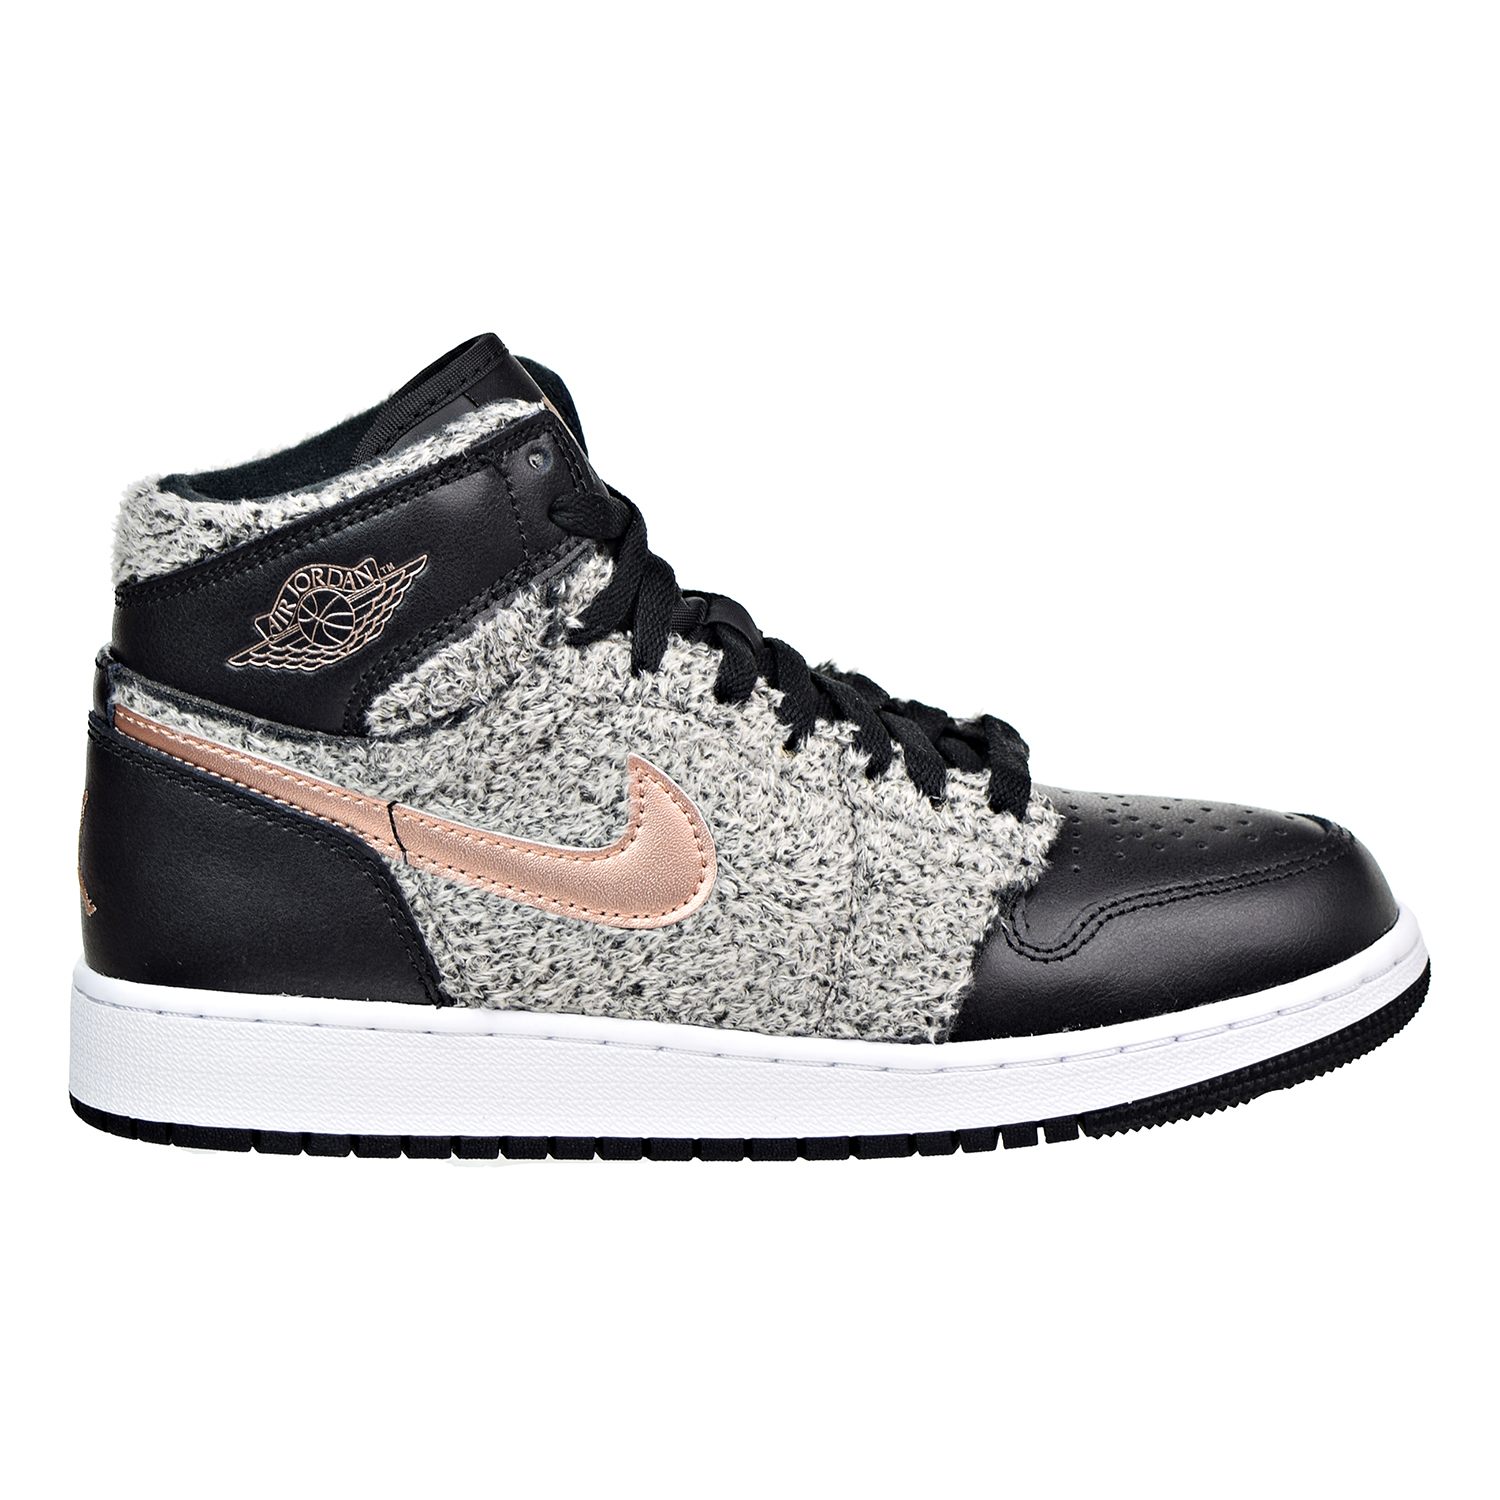 Air Jordan 1 Retro High GG Big kids Shoes Black/Metallic Bronze/White 332148-022